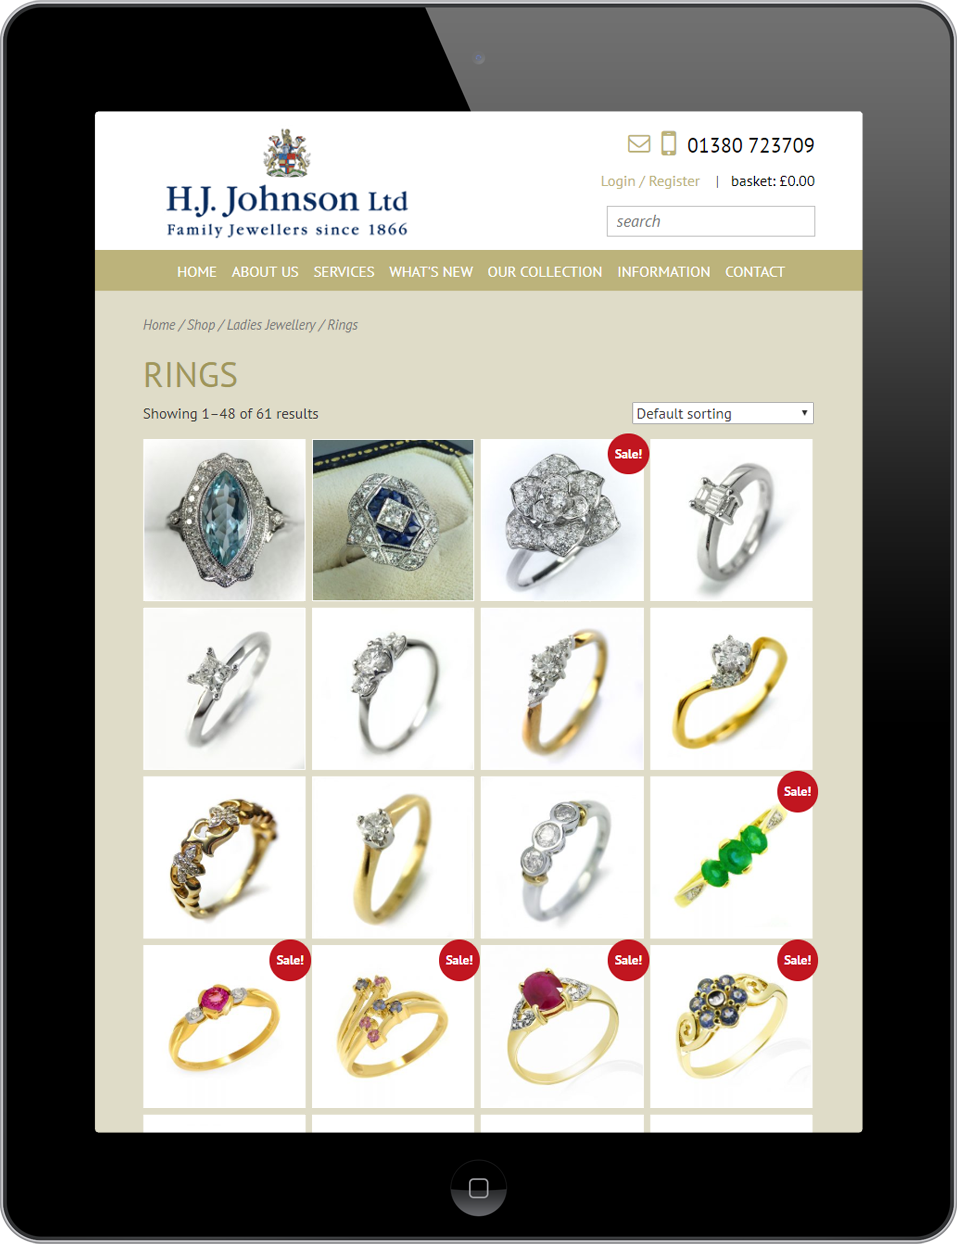 Responsive web design for H.J. Johnson